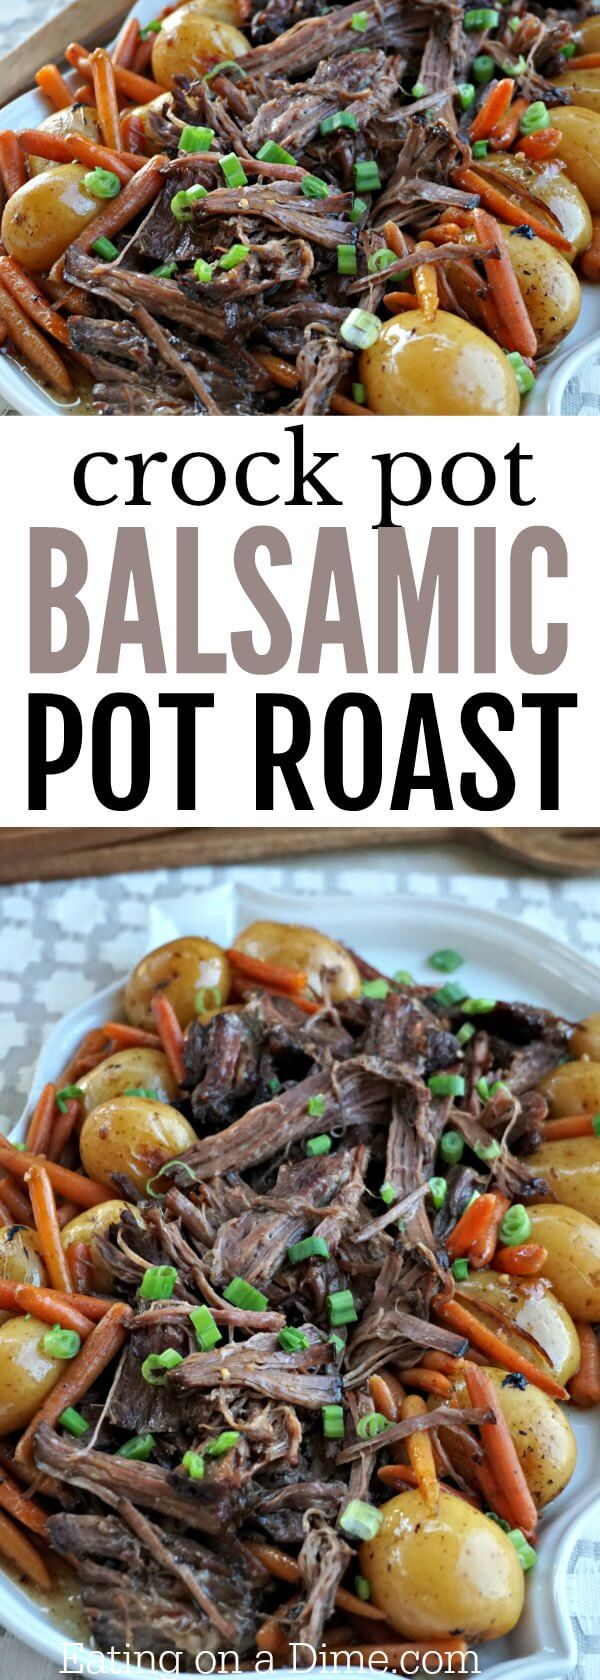 Try this easy Balsamic Crock pot Pot Roast Recipe! This balsamic slow cooker pot roast recipe will be a hit. Easy pot roast recipe is so tender.